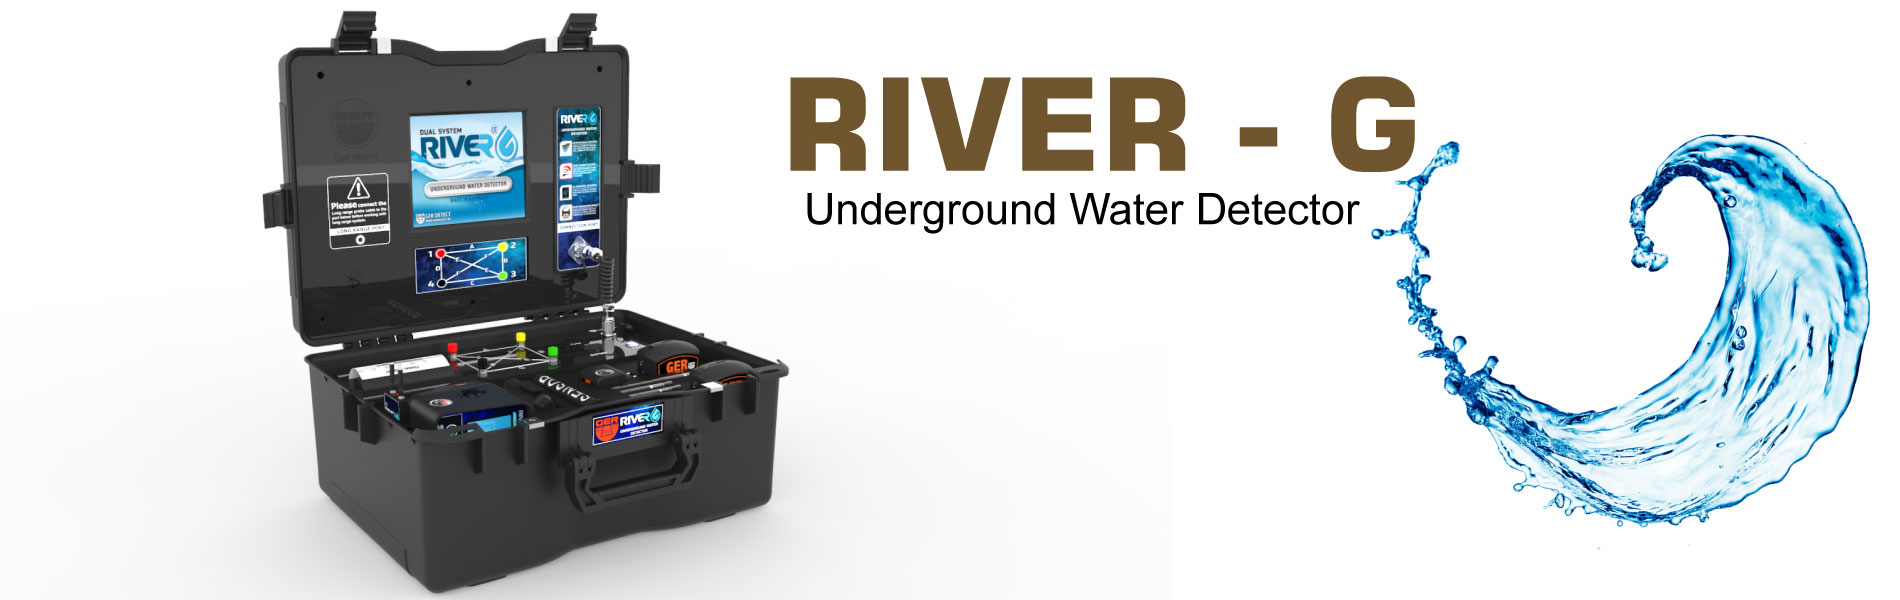 River G water detector device